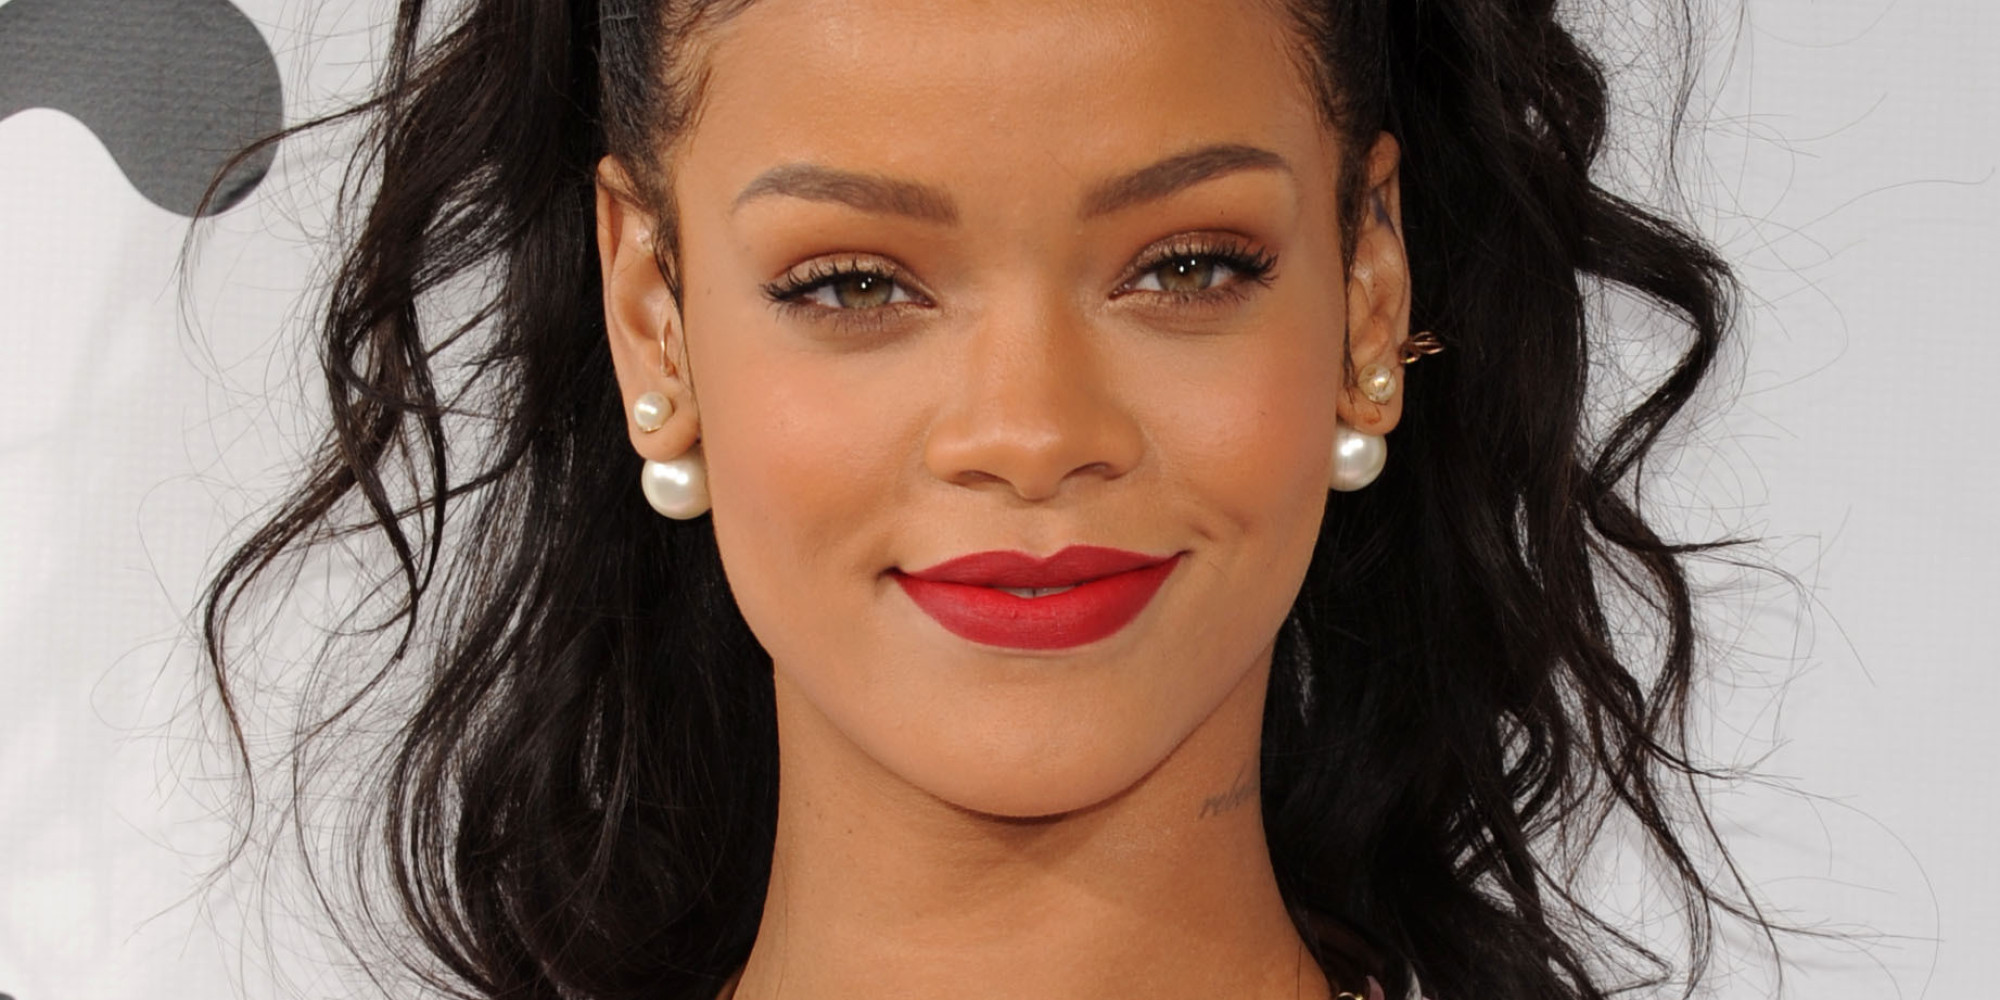 Rihanna Red Lipstick 193.87 Kb